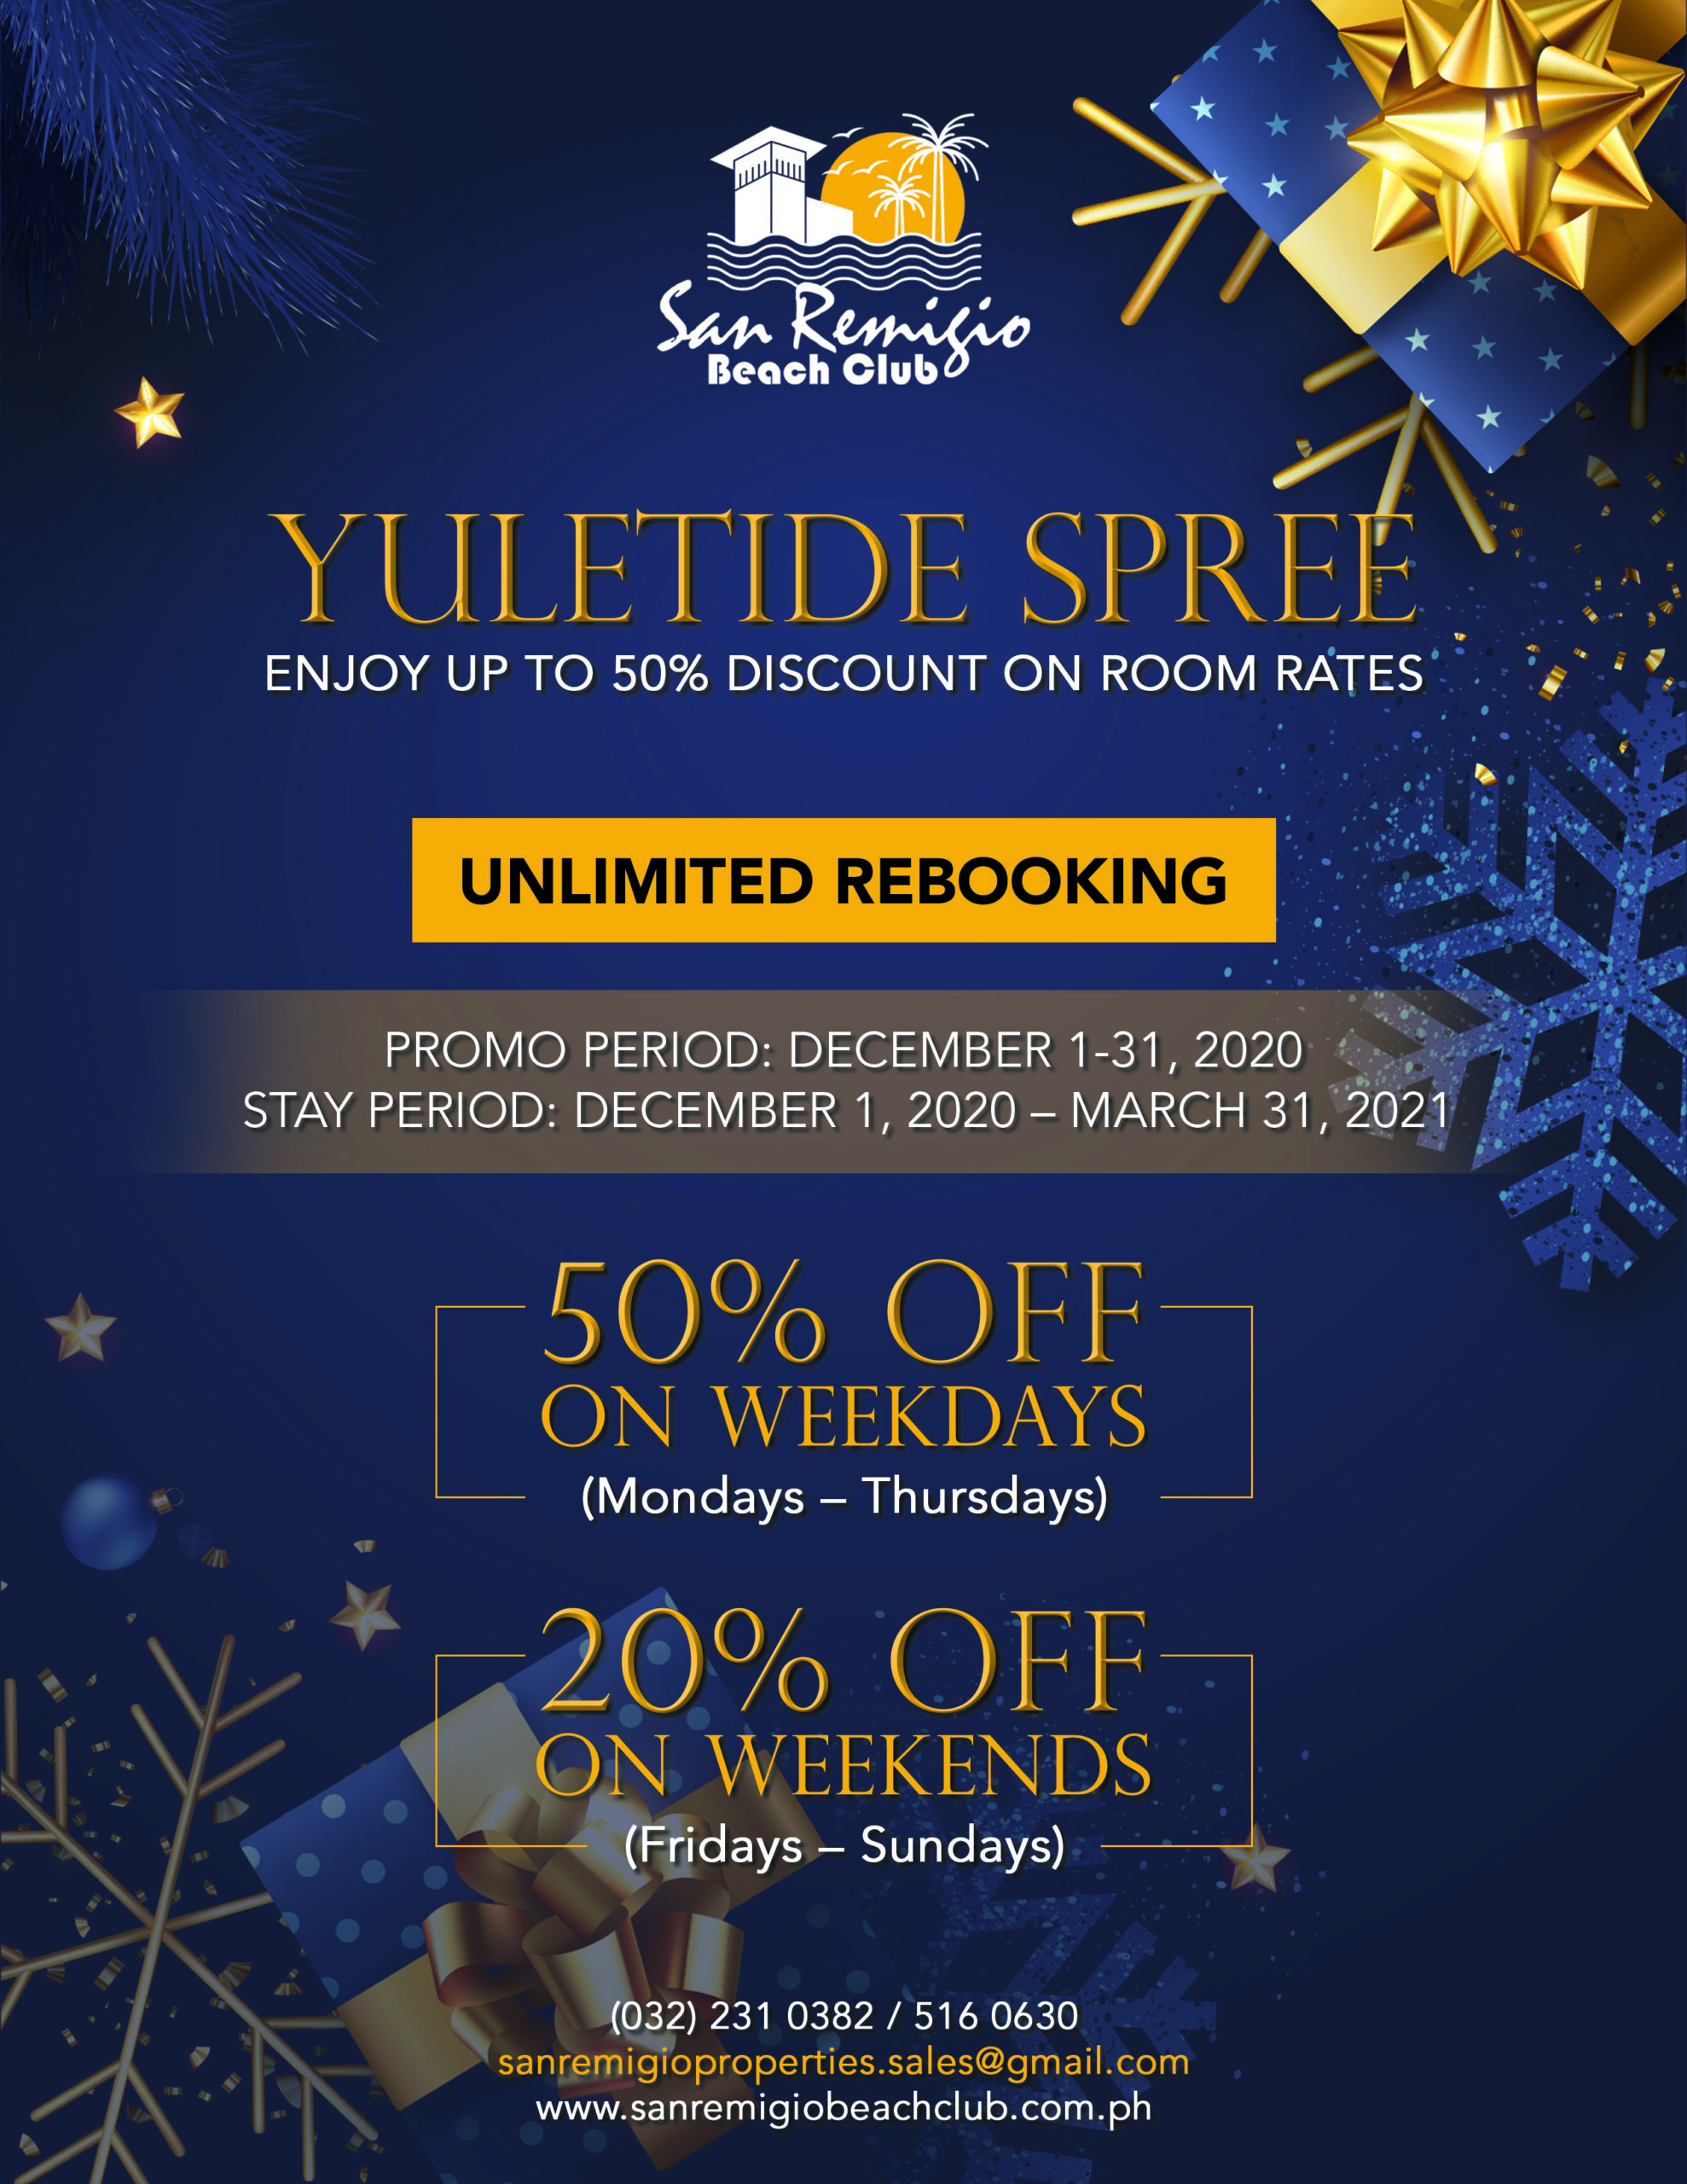 YULETIDE SPREE